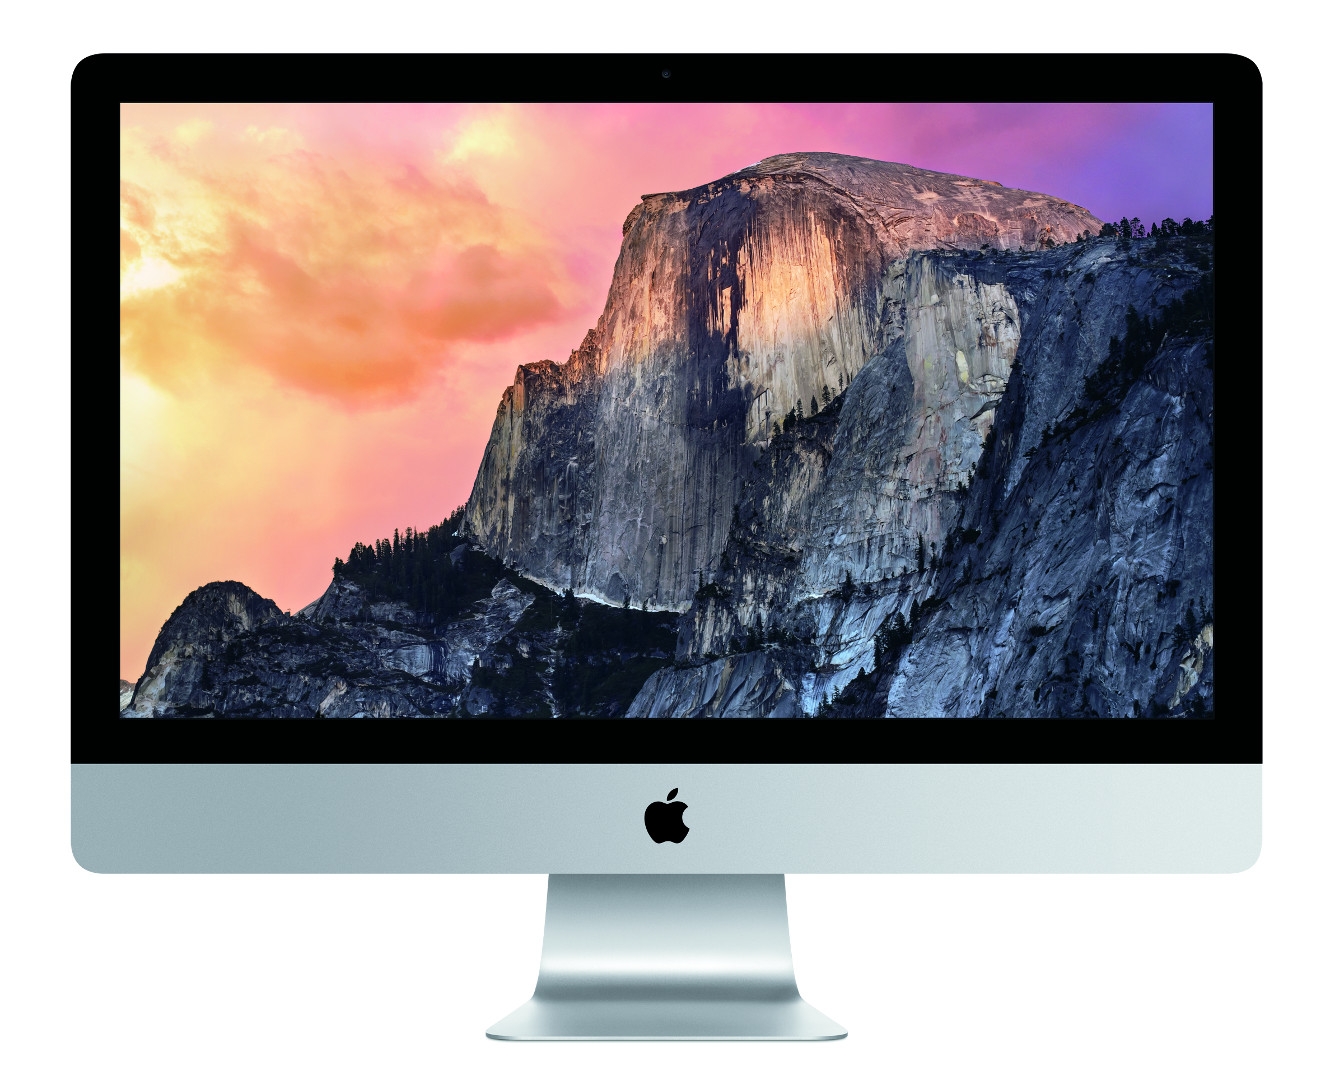 Apple iMac 27inch Intel Core i5 2.8 GHZ 8GB RAM 1TB HDD MC511BA A1312